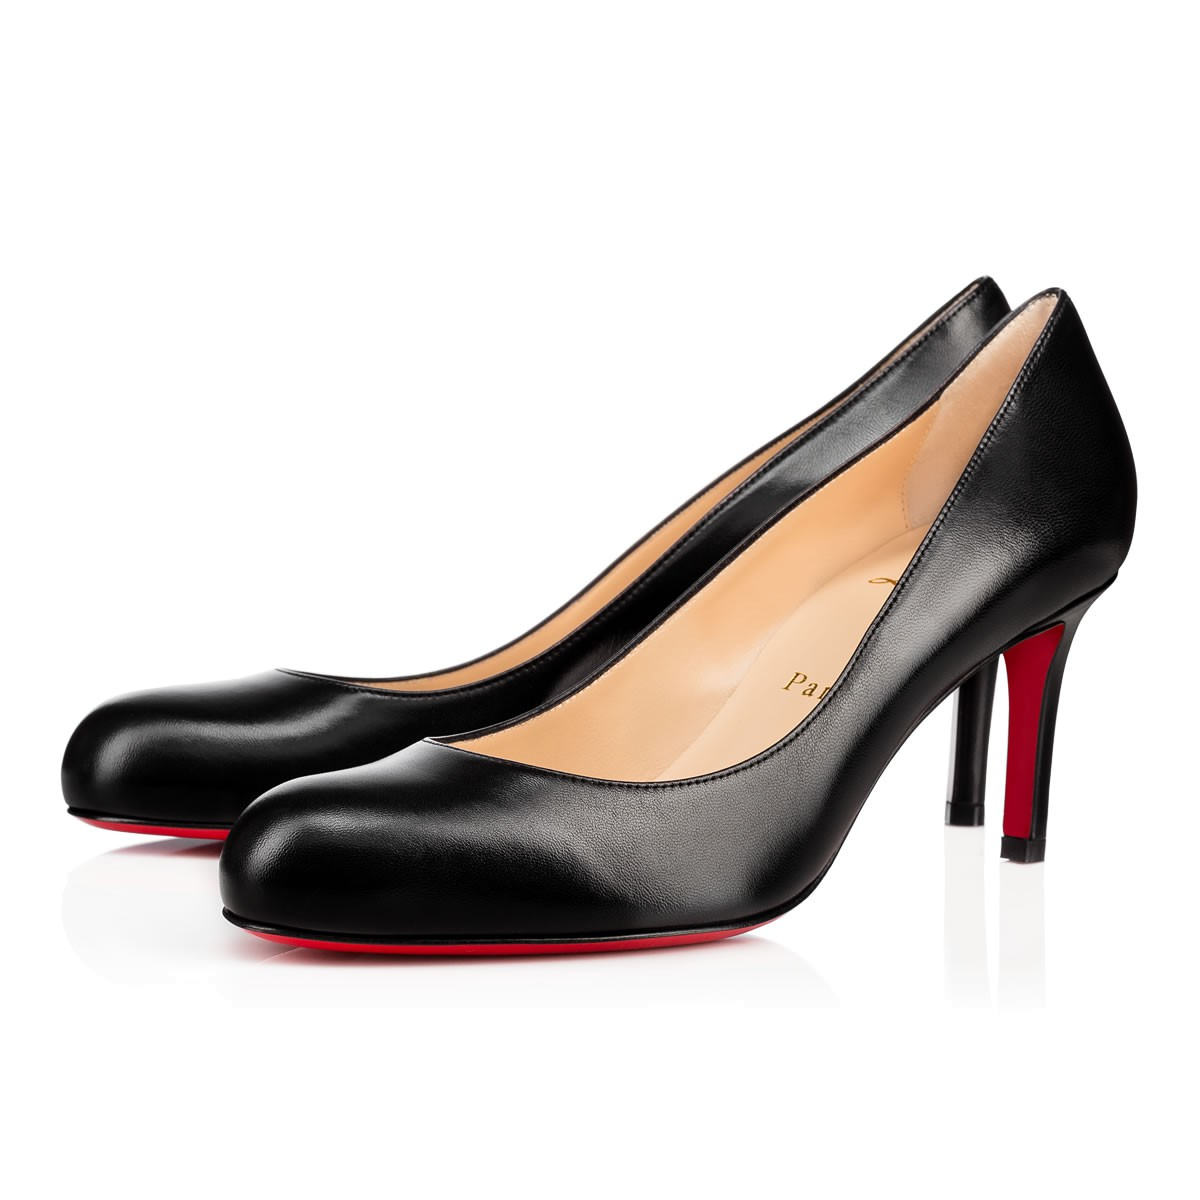 9f925fe5549b Shoes - Simple Pump - Christian Louboutin ...